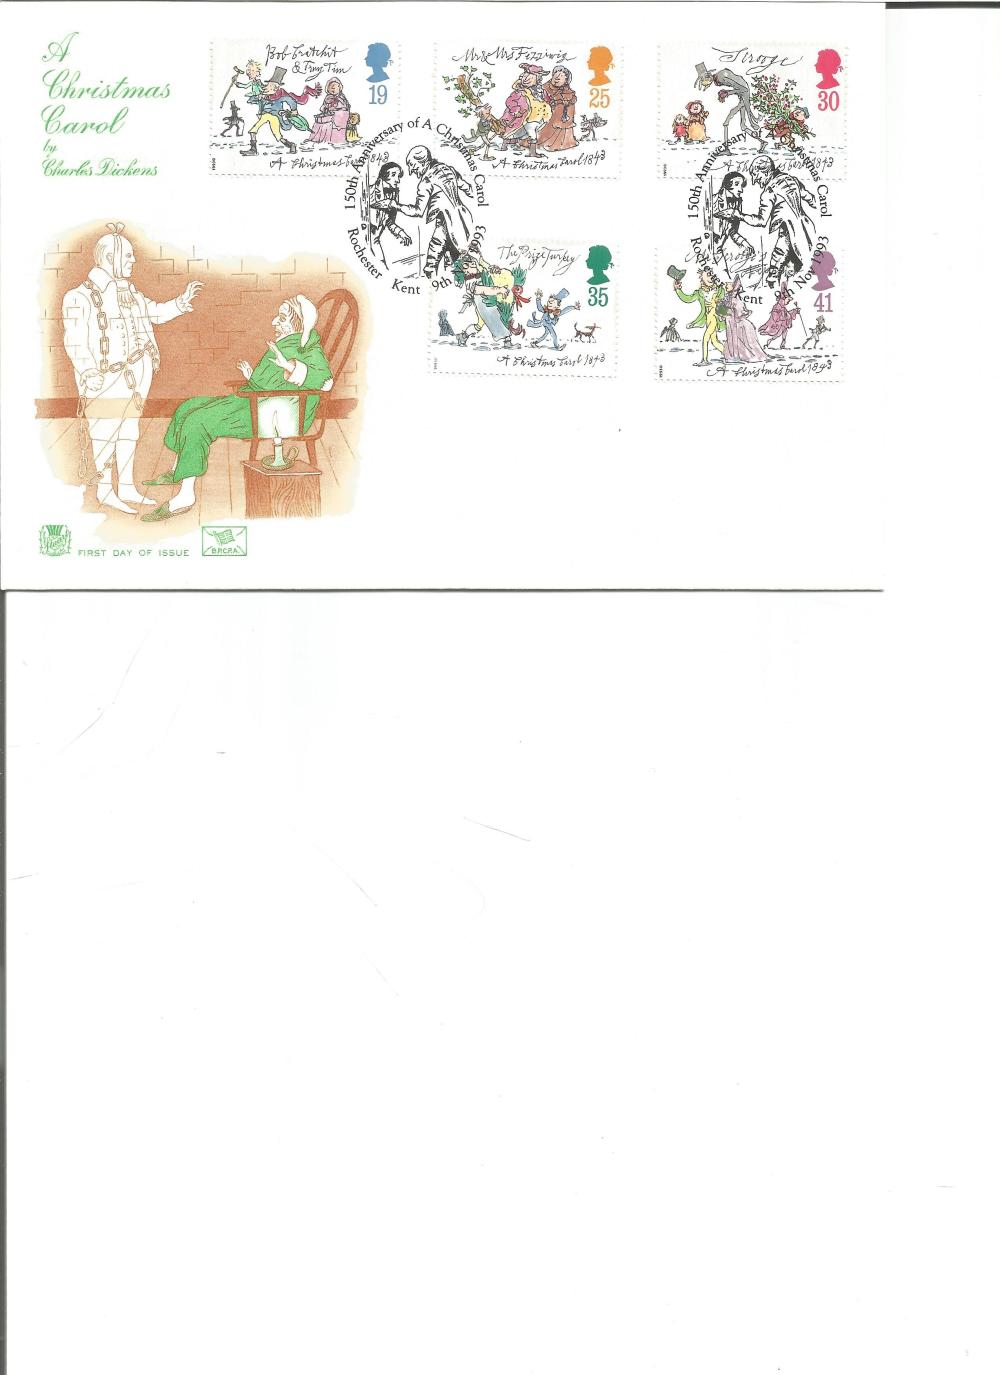 FDC A Christmas Carol by Charles Dickens c/e five commemorative stamps double PM 150th Anniversary